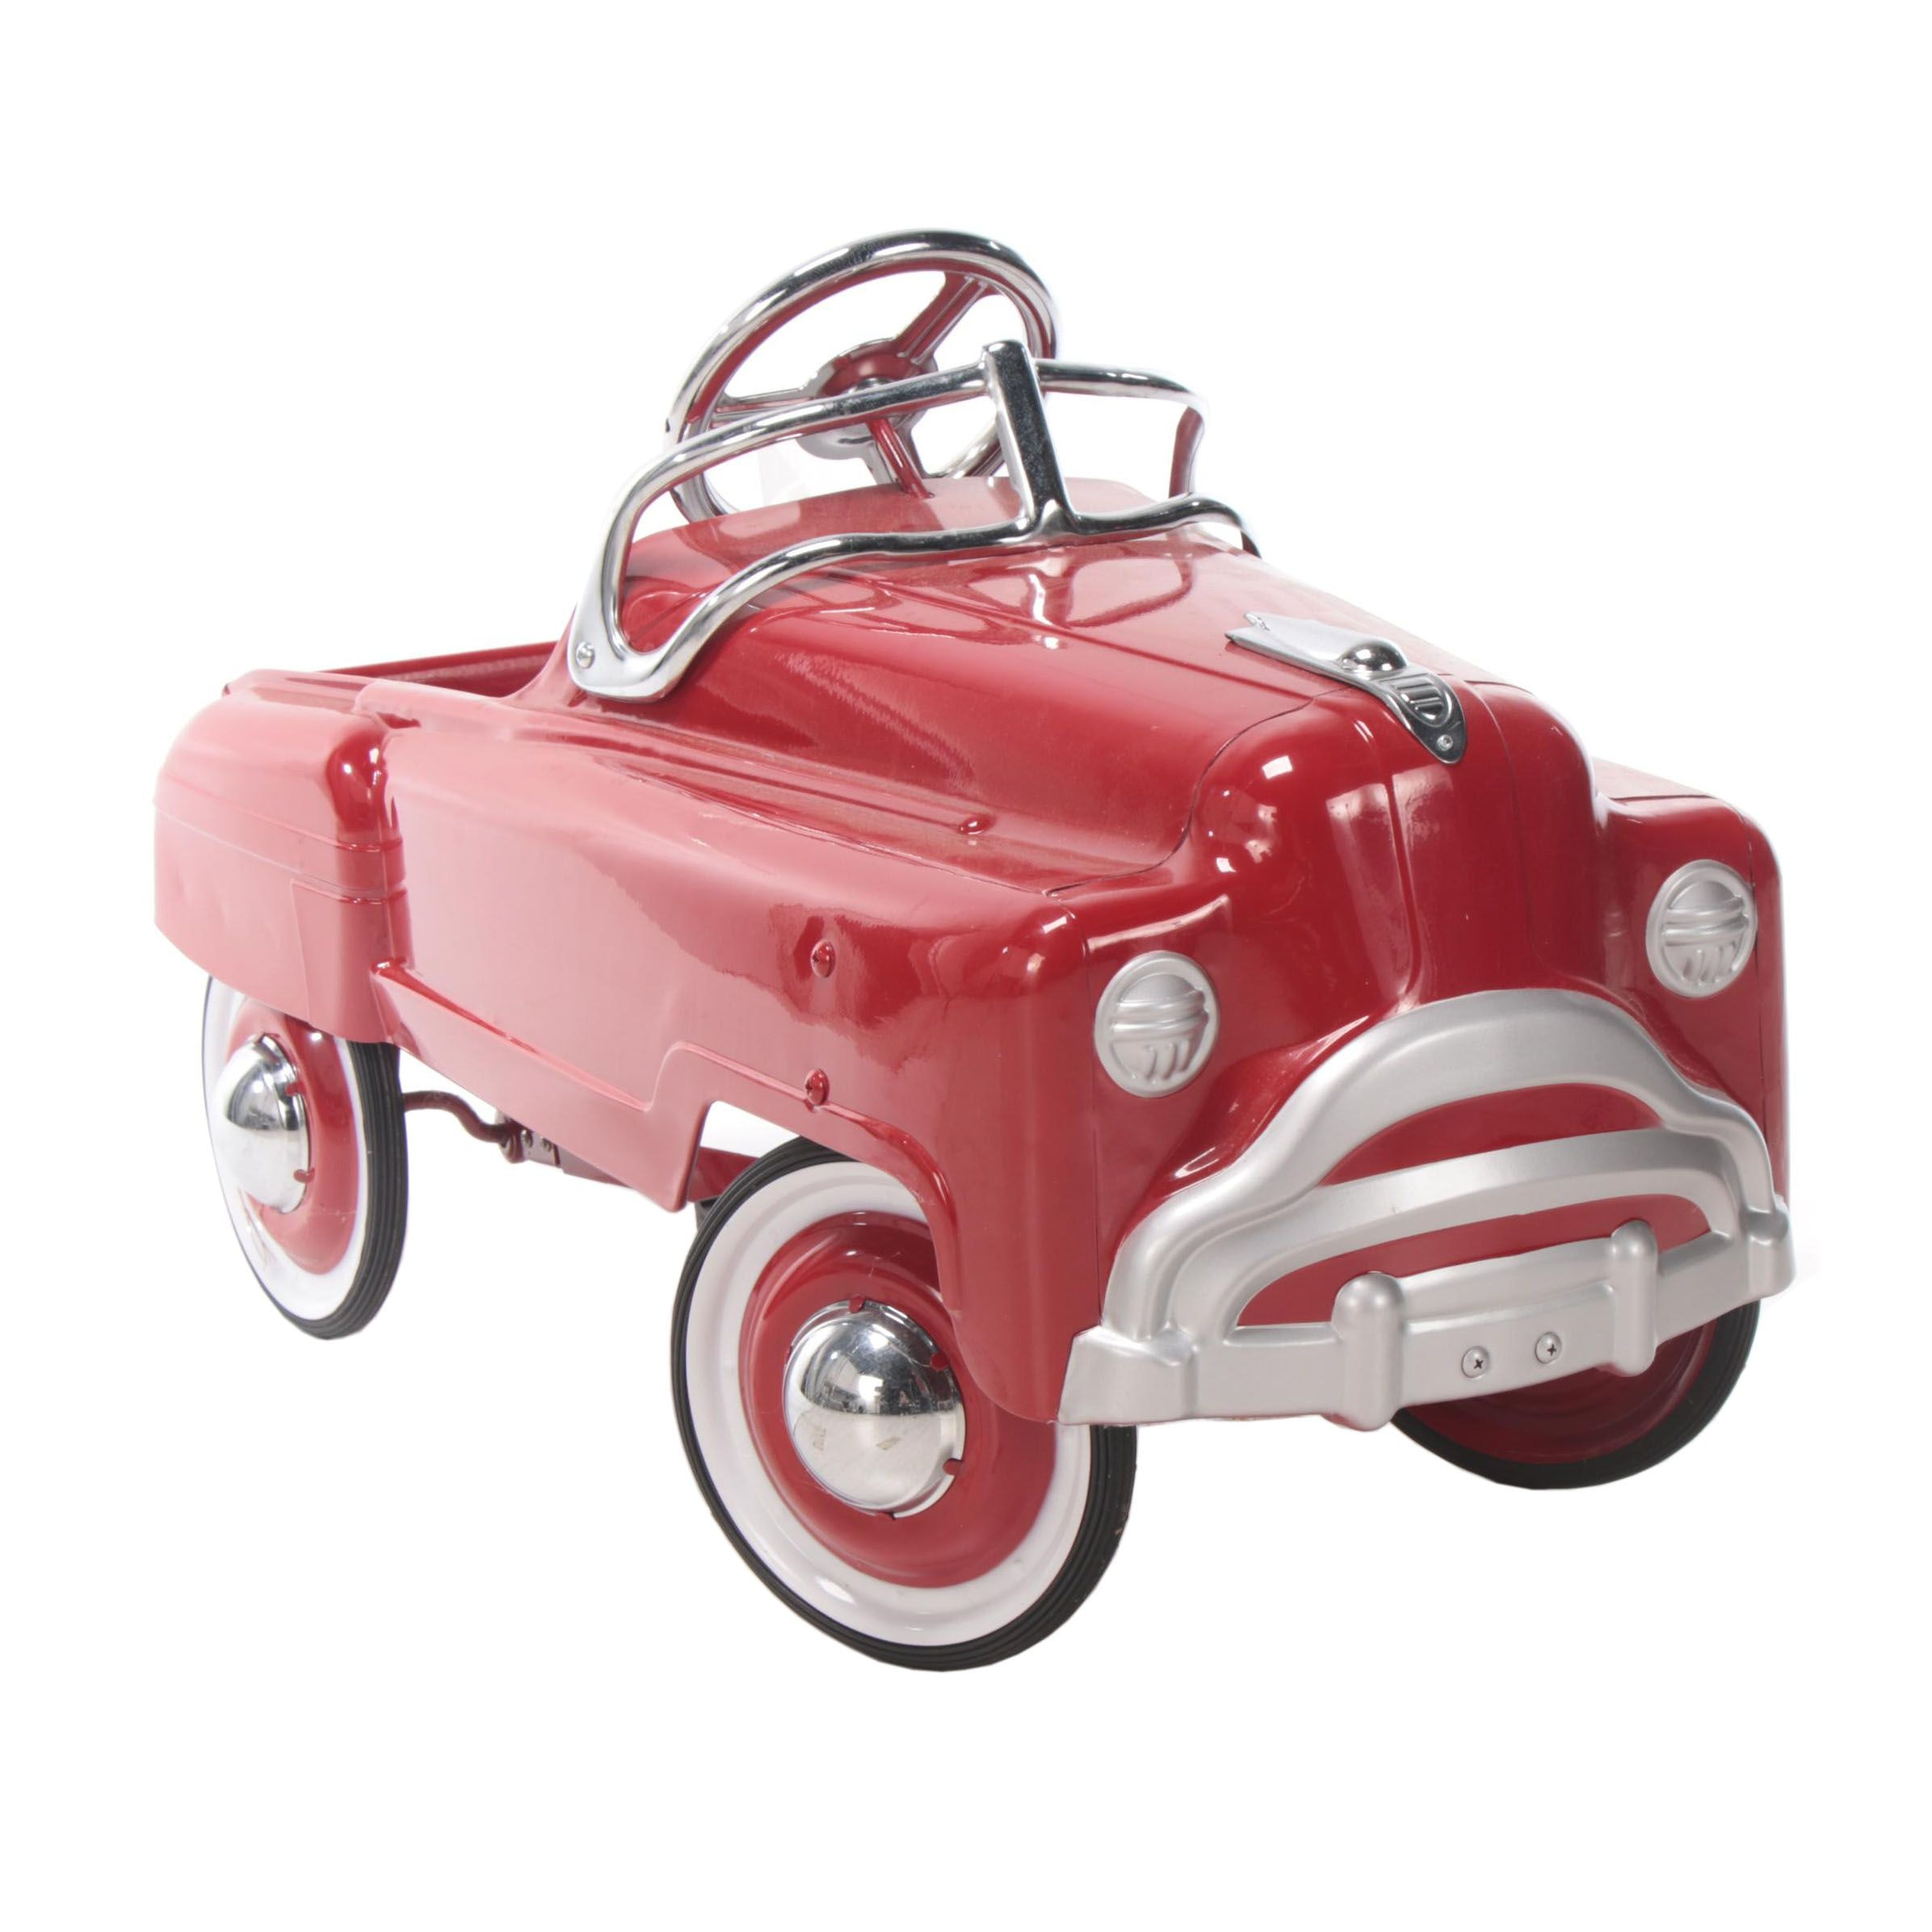 1950s Style Pressed Steel Pedal Car